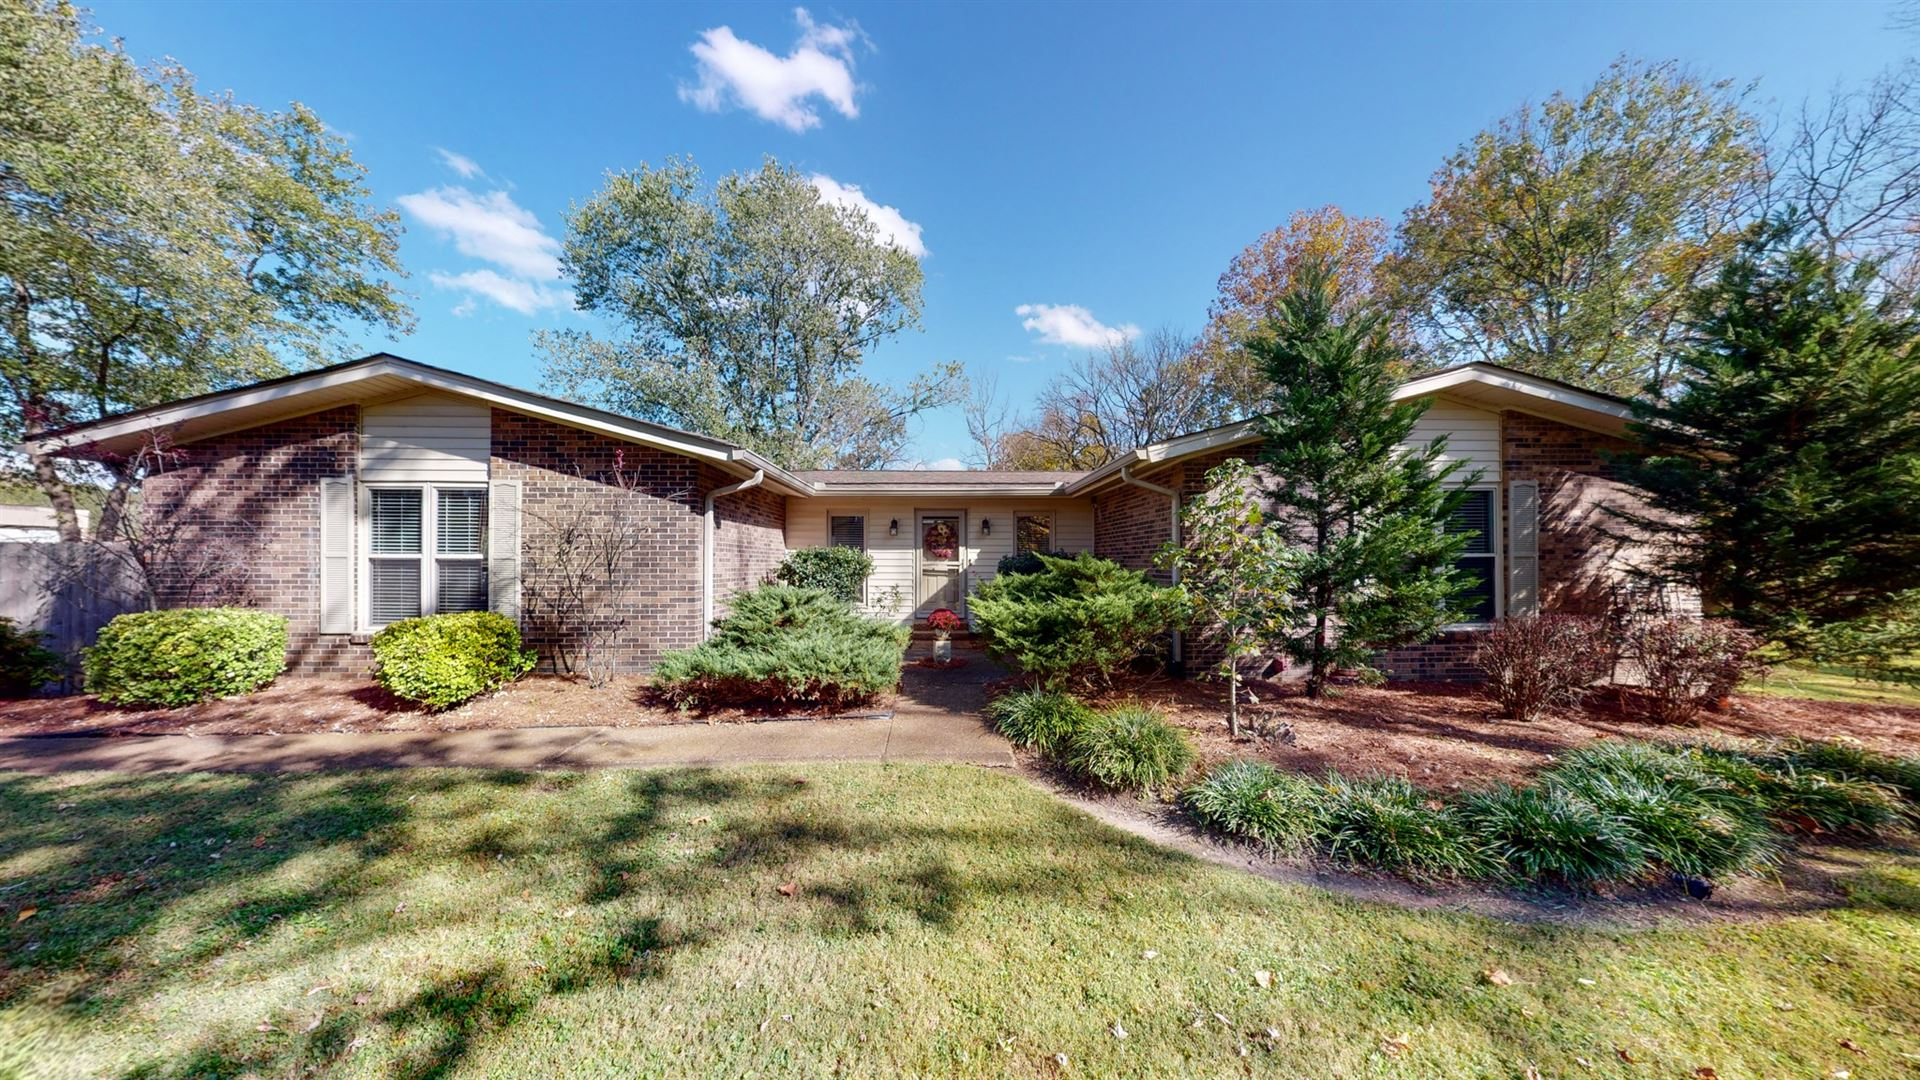 107 Pascal Dr, Mount Juliet, TN 37122 - MLS#: 2202089